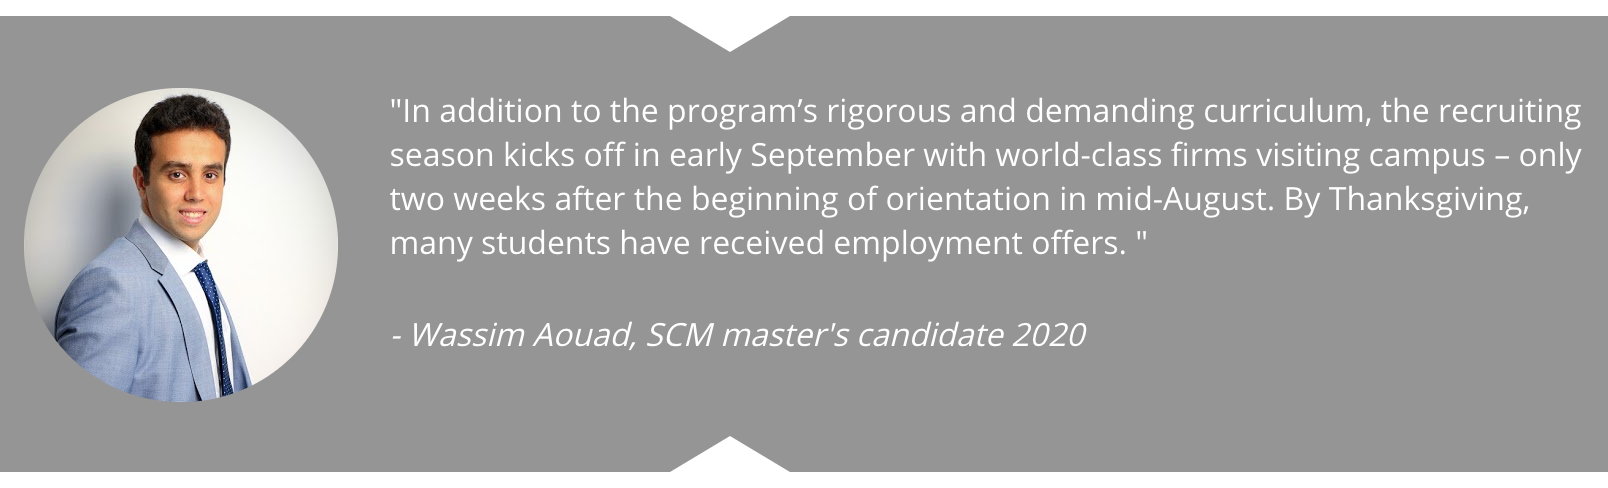 """In addition to the program's rigorous and demanding curriculum, the recruiting season kicks off in early September with world-class firms visiting campus – only two weeks after the beginning of orientation in mid-August. By Thanksgiving, many students have received employment offers. ""  Quote from Wassim Aouad, SCM master's candidate 2020"